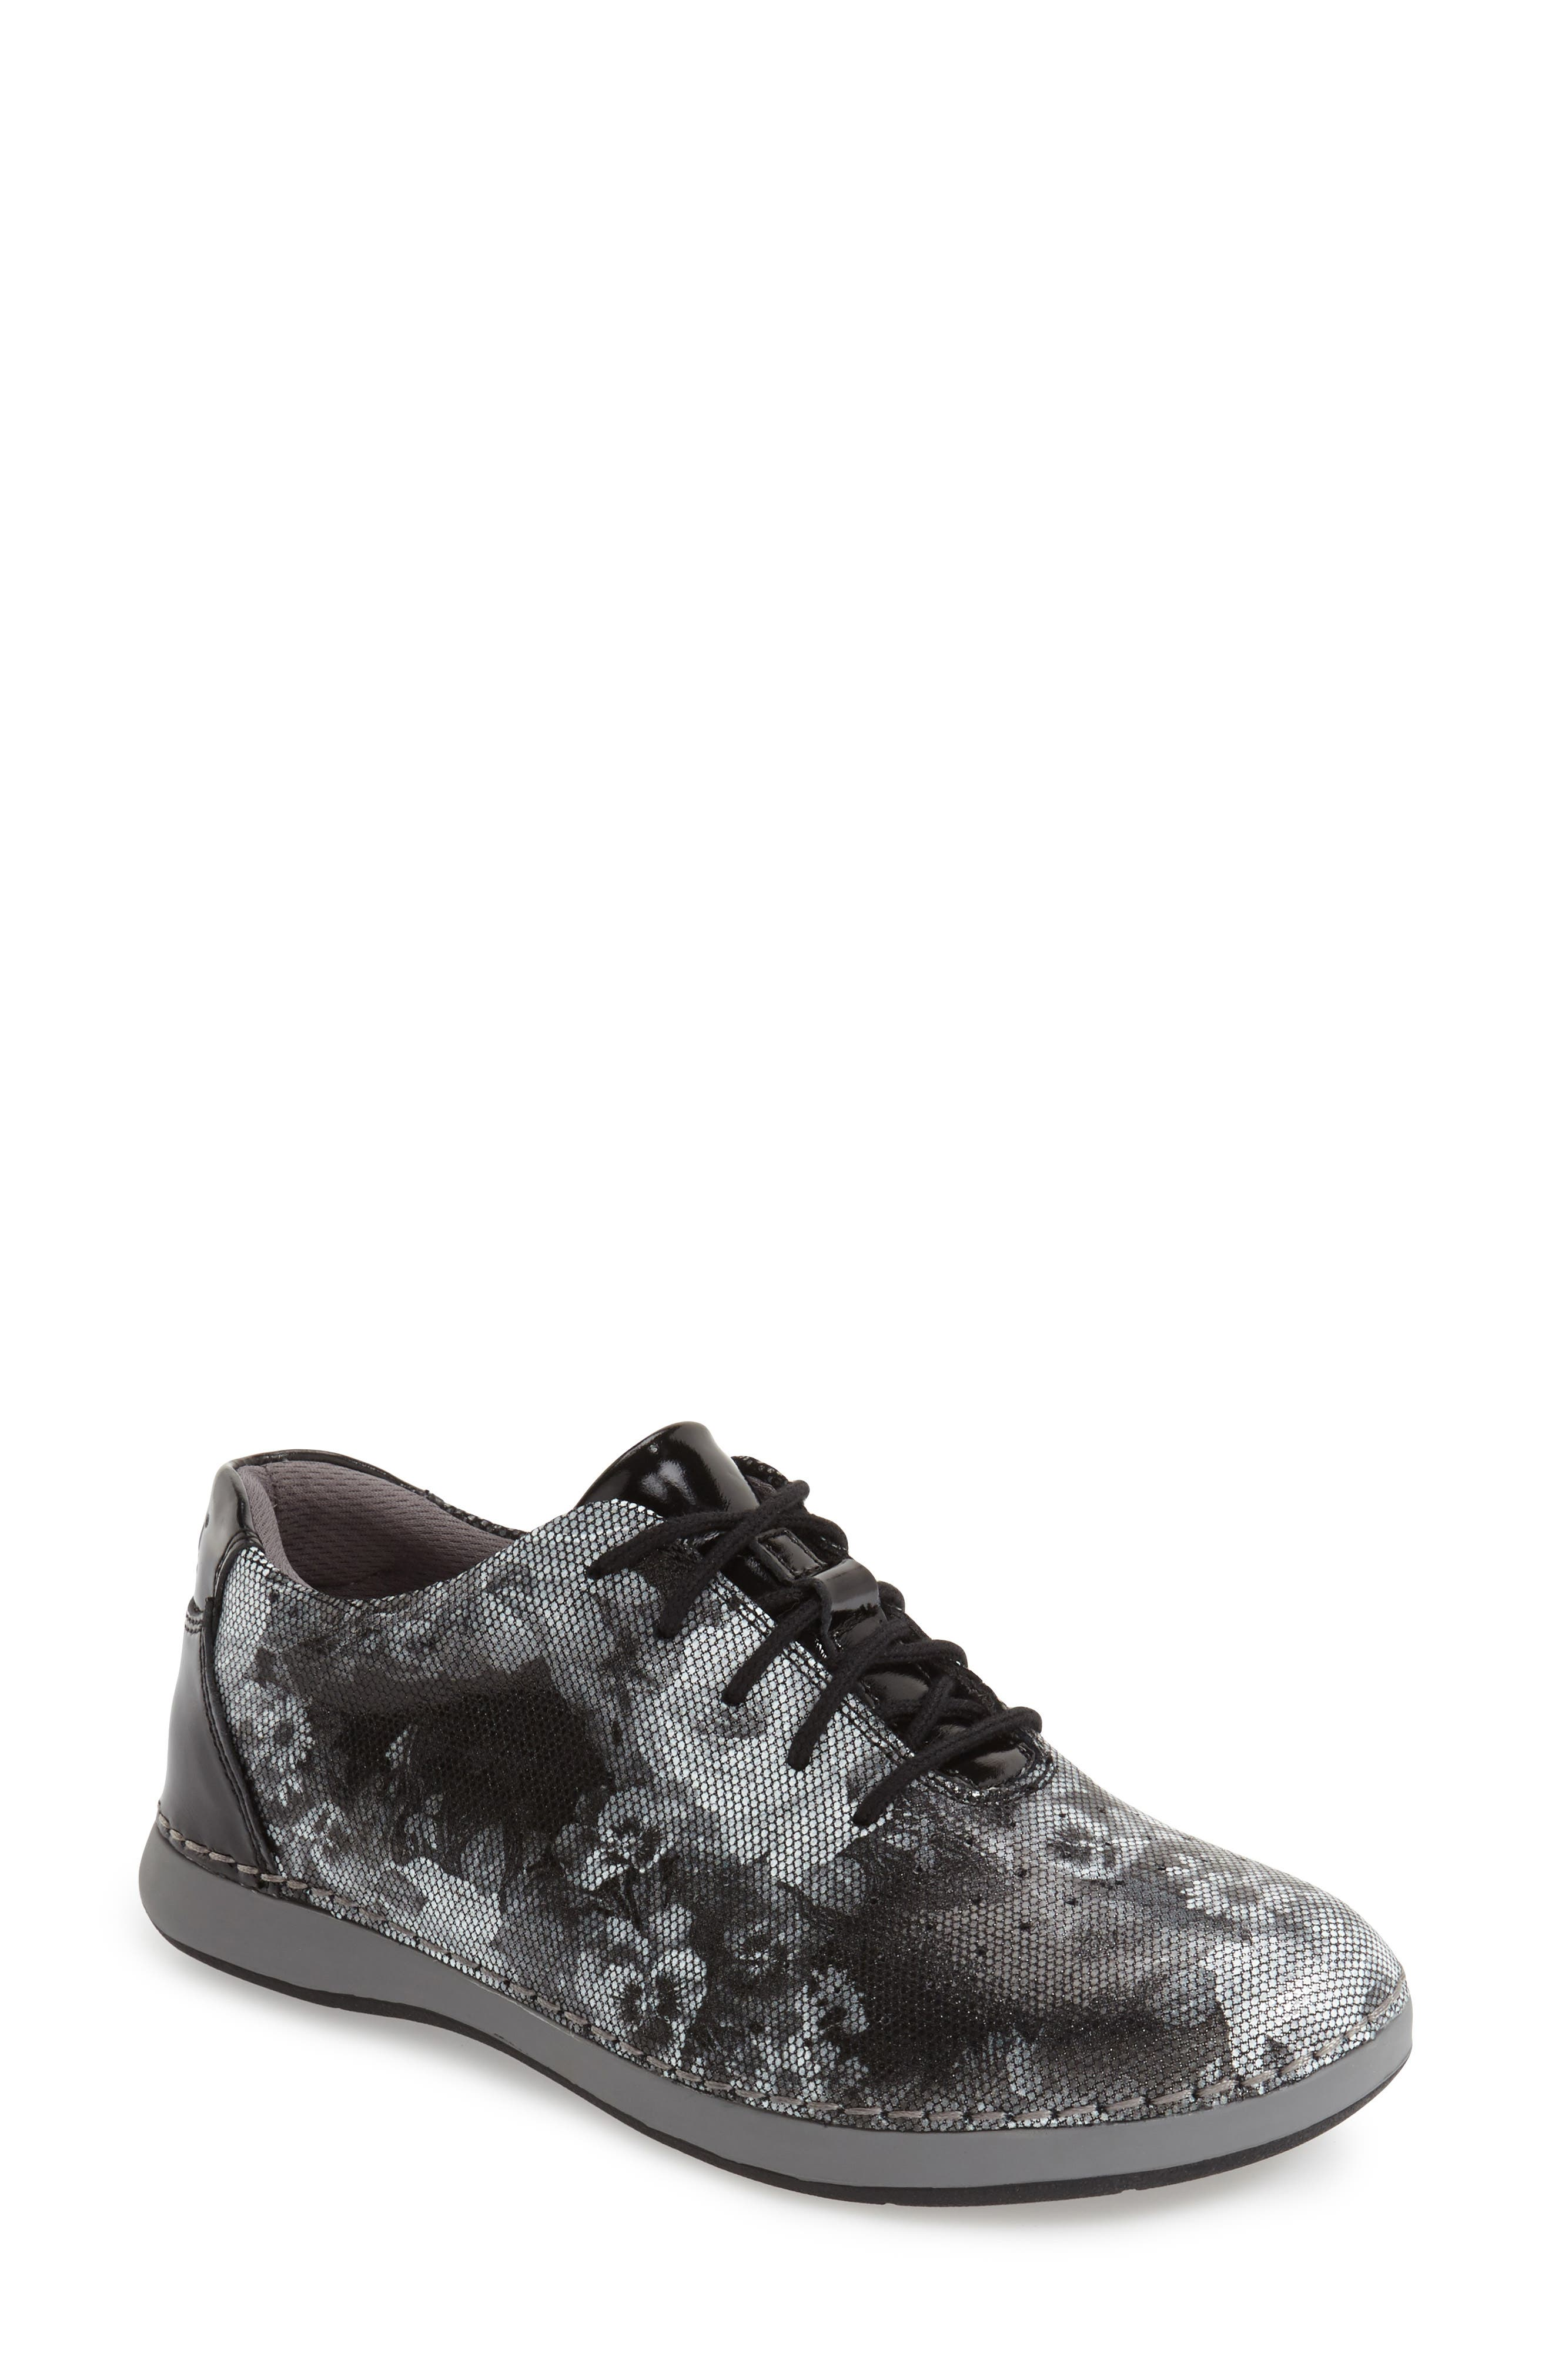 Alternate Image 1 Selected - Alegria Essence Lace-Up Leather Oxford (Women)